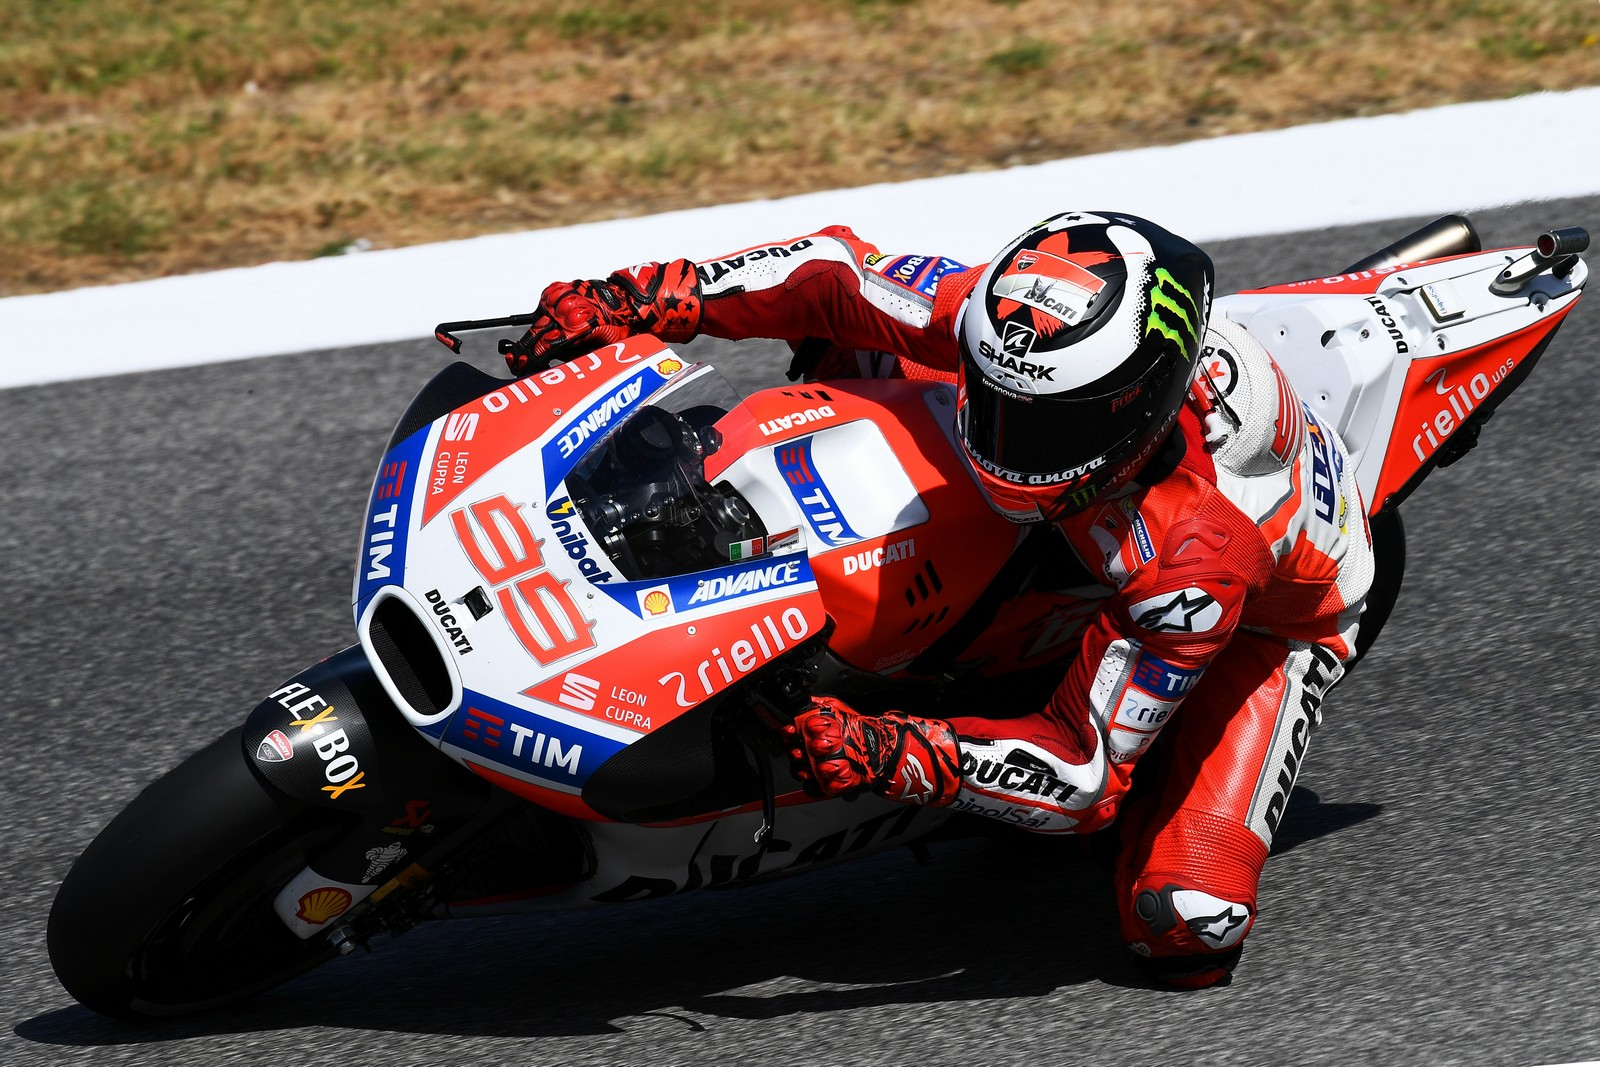 Ducati's rider Jorge Lorenzo competes during the Moto GP free practice session of the Italian Grand Prix at the Mugello track on June 2, 2017. / AFP PHOTO / Vincenzo PINTO        (Photo credit should read VINCENZO PINTO/AFP/Getty Images)